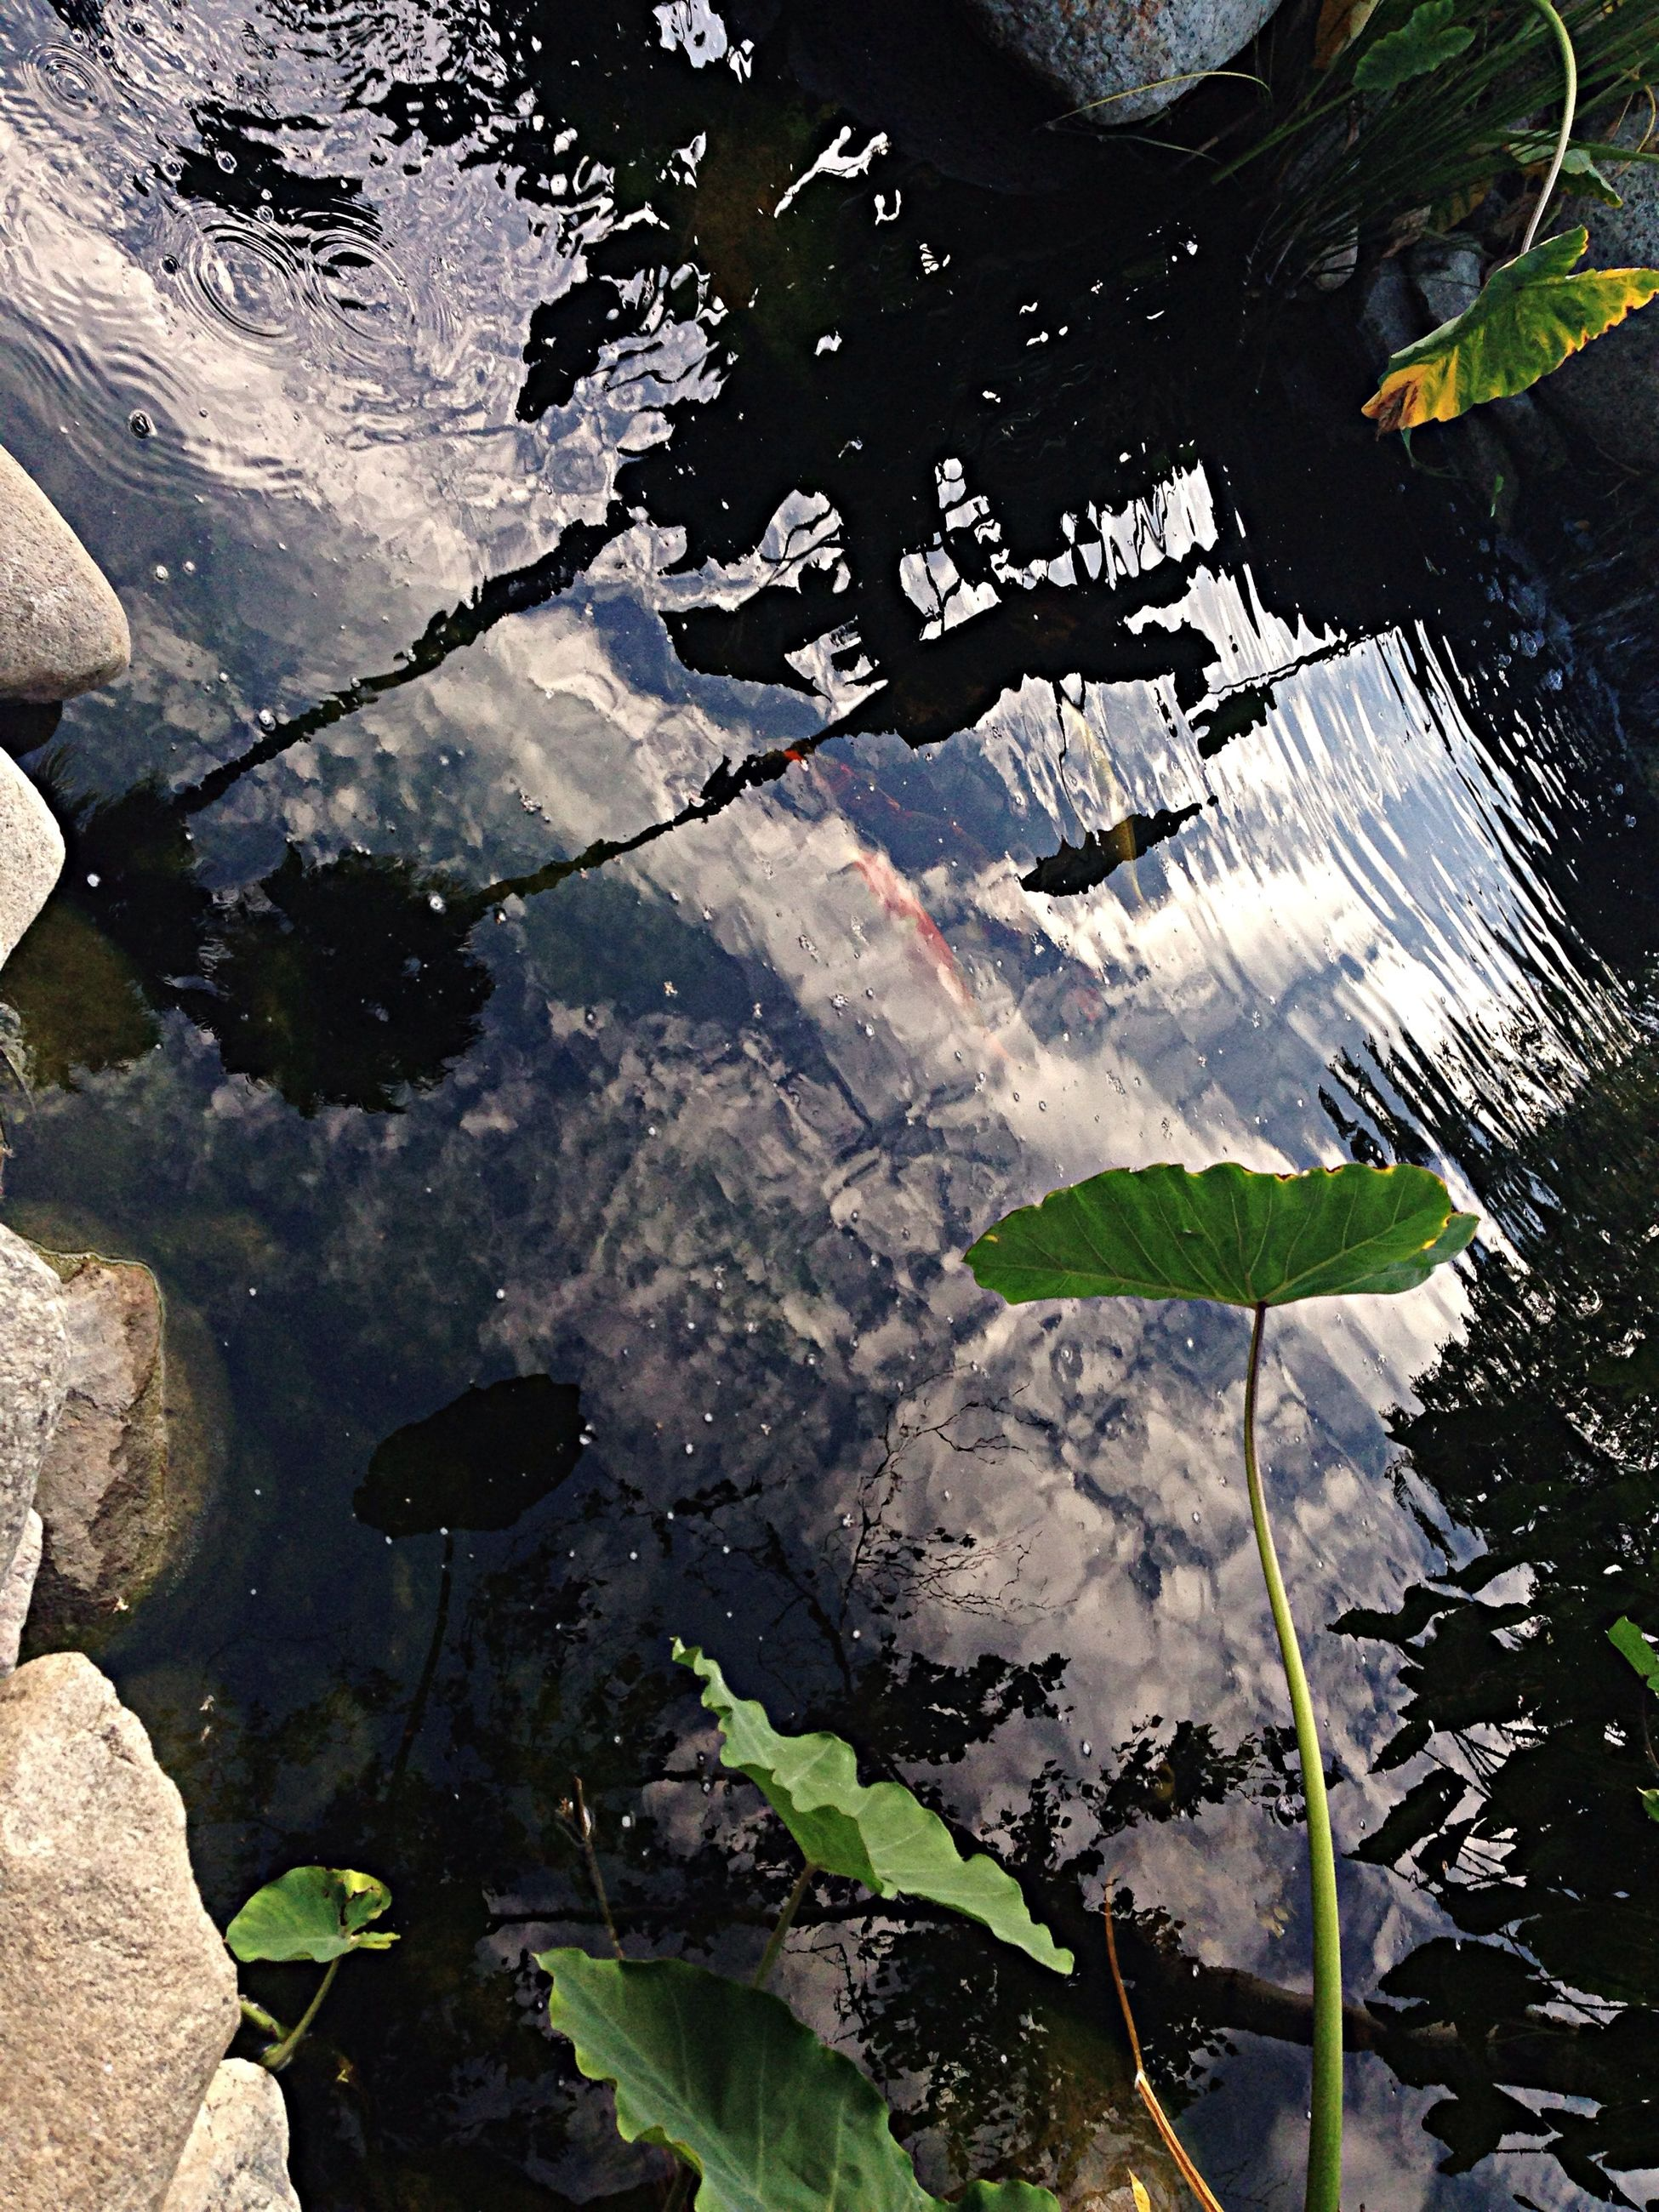 water, leaf, reflection, lake, high angle view, pond, nature, plant, tranquility, puddle, wet, beauty in nature, standing water, floating on water, outdoors, day, growth, river, no people, green color